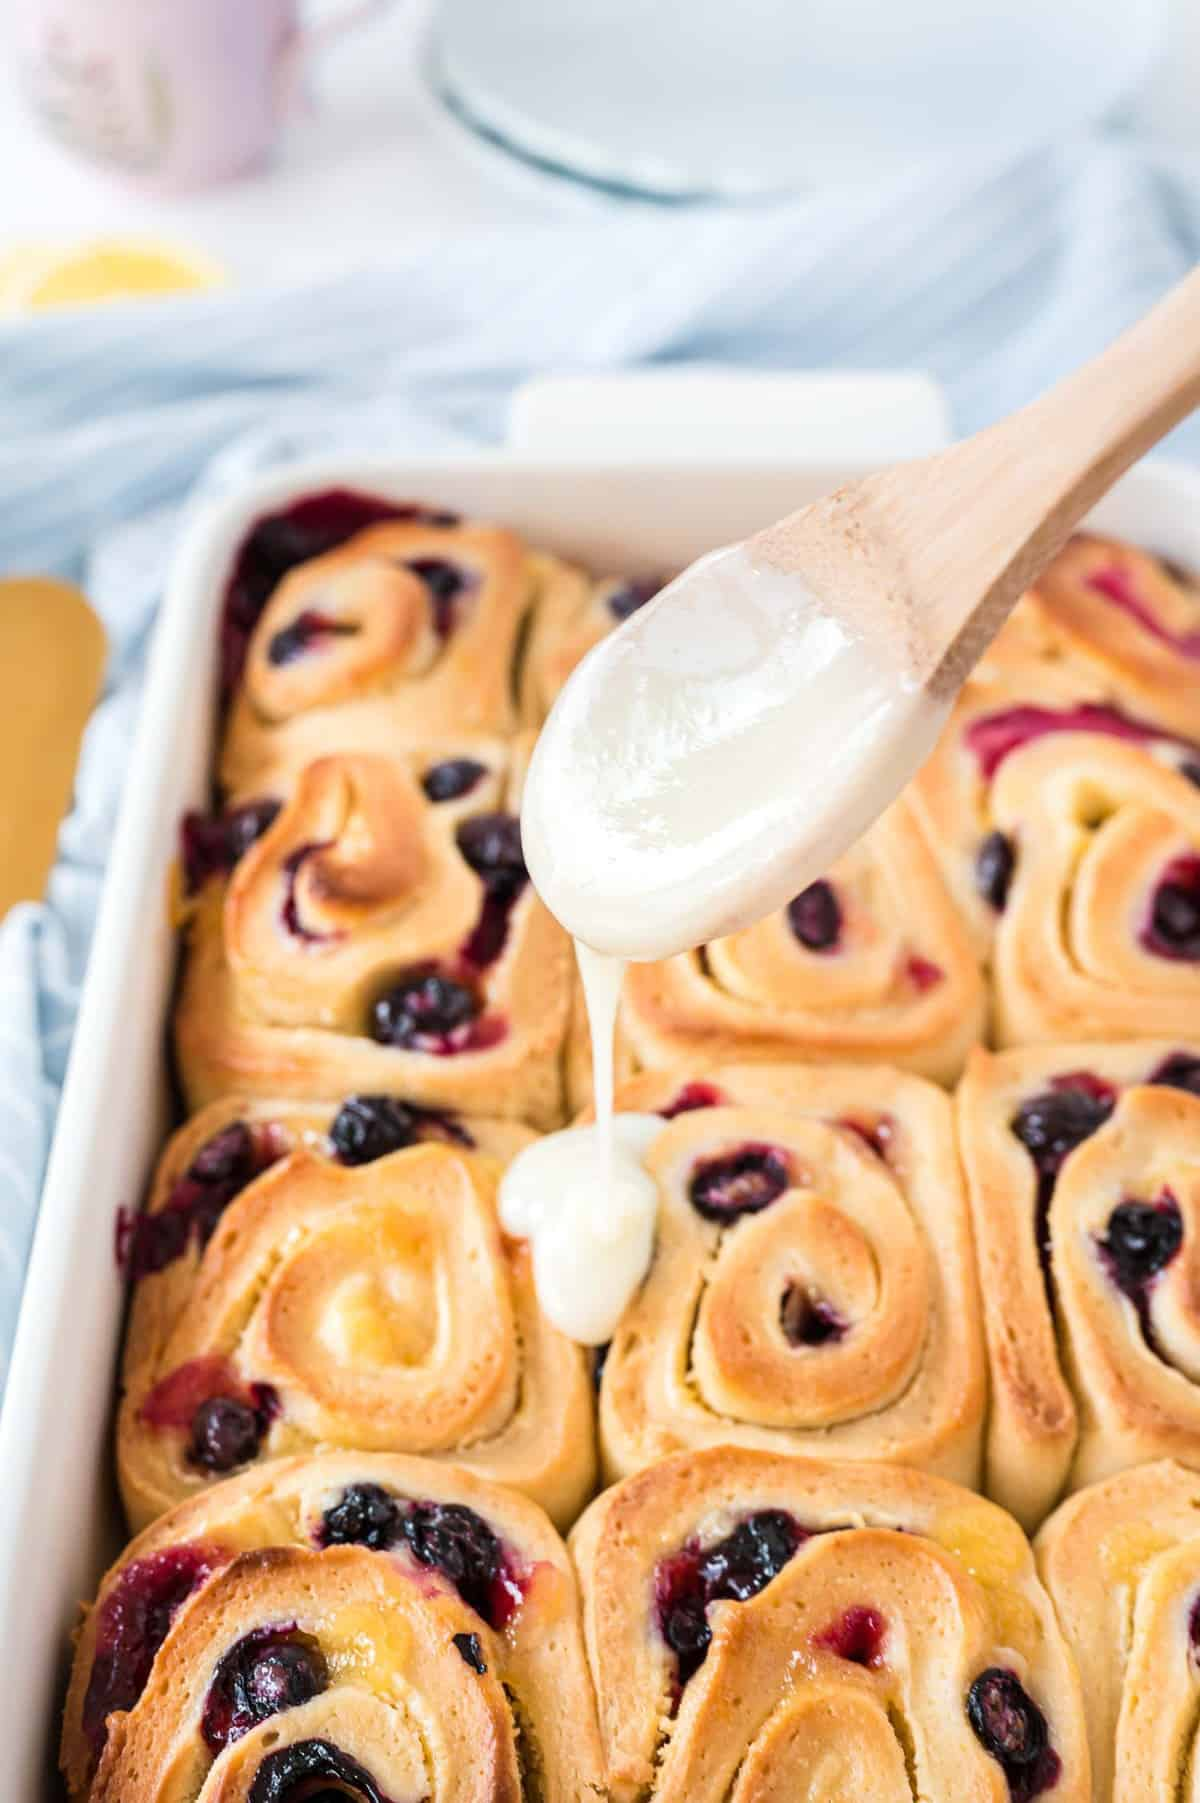 Glaze being drizzled on blueberry lemon rolls.